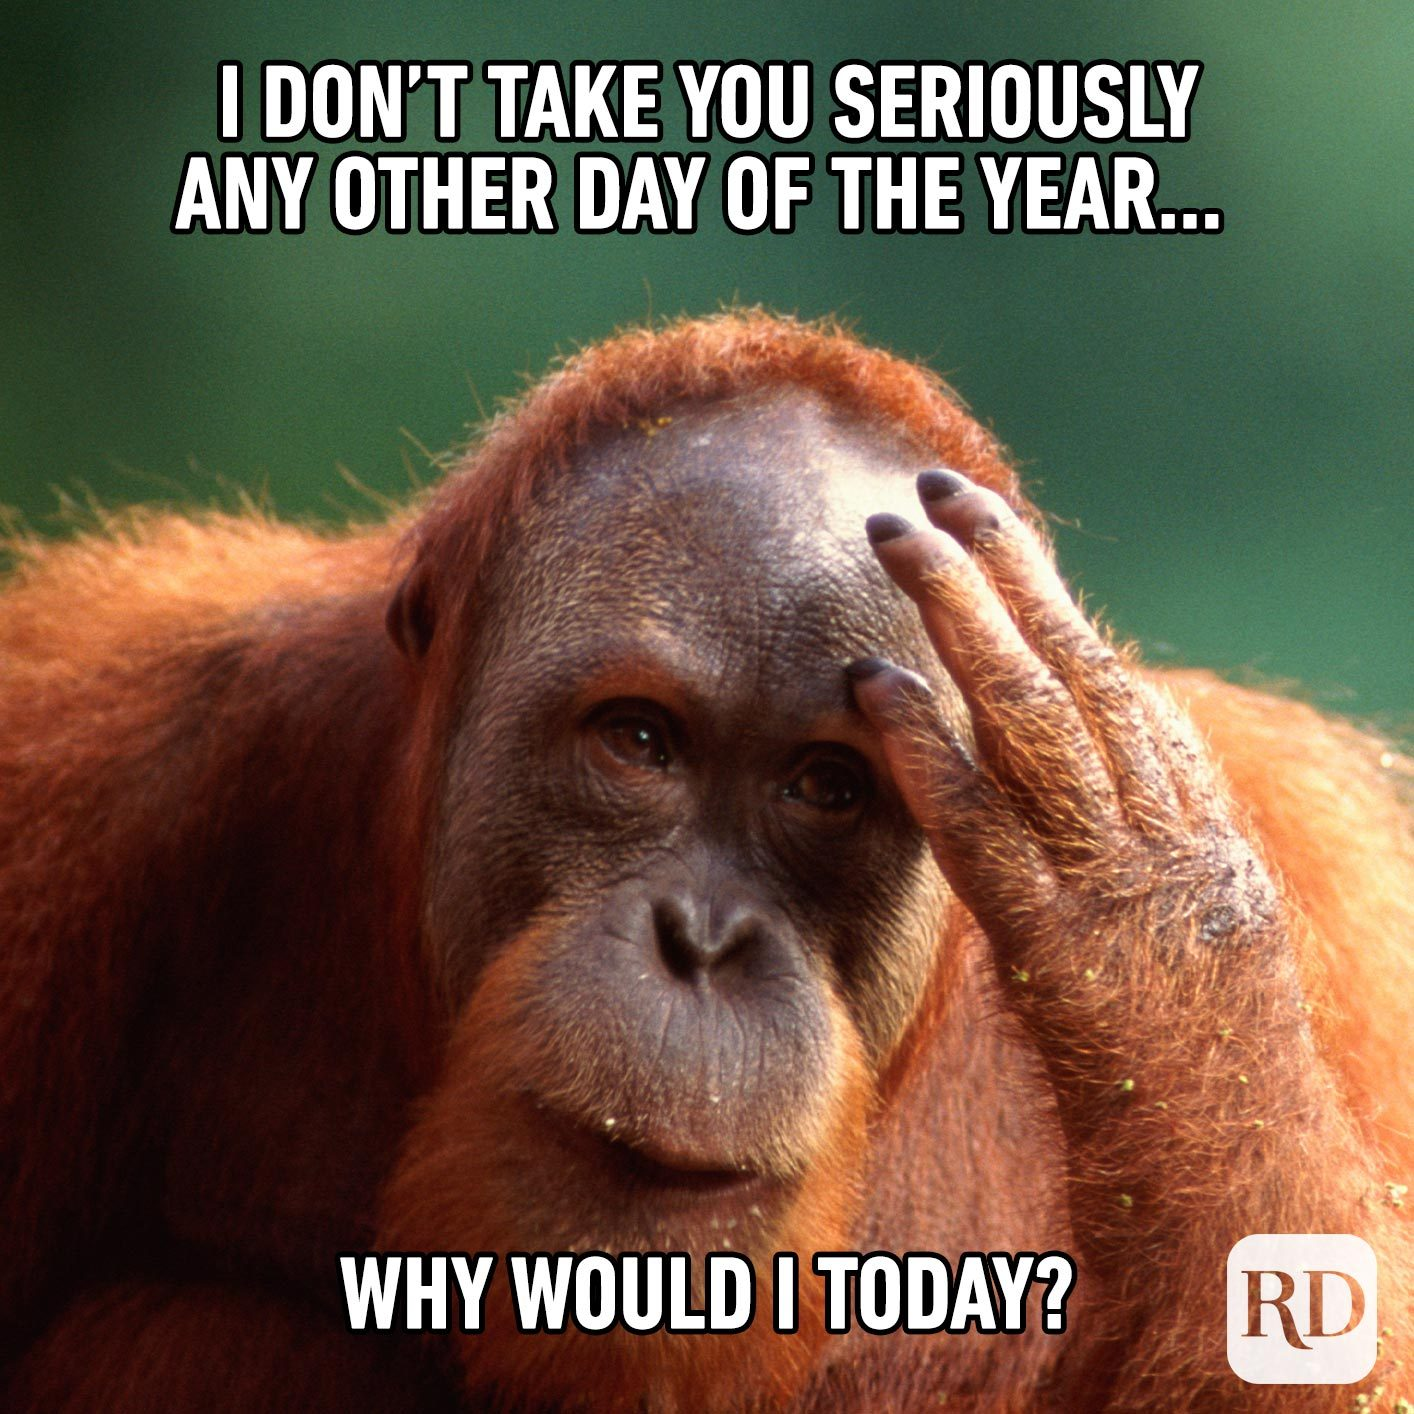 Orangutan rubbing forehead. Meme text: I don't take you seriously any other day of the year… why would I today?